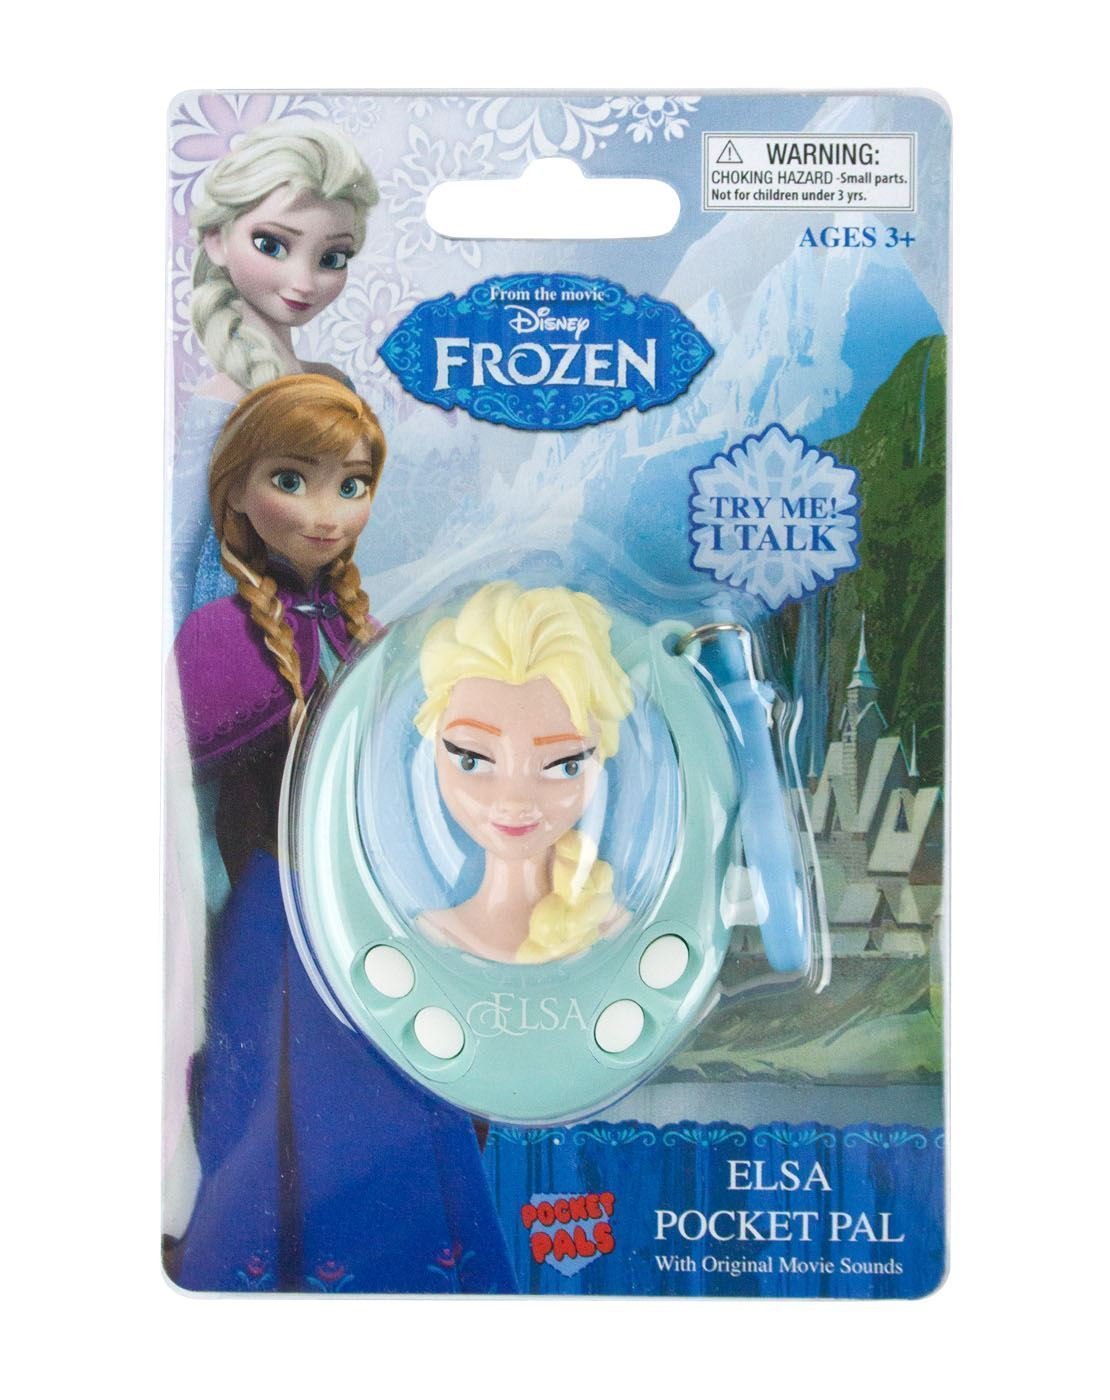 Disney Frozen Elsa Pocket Pal